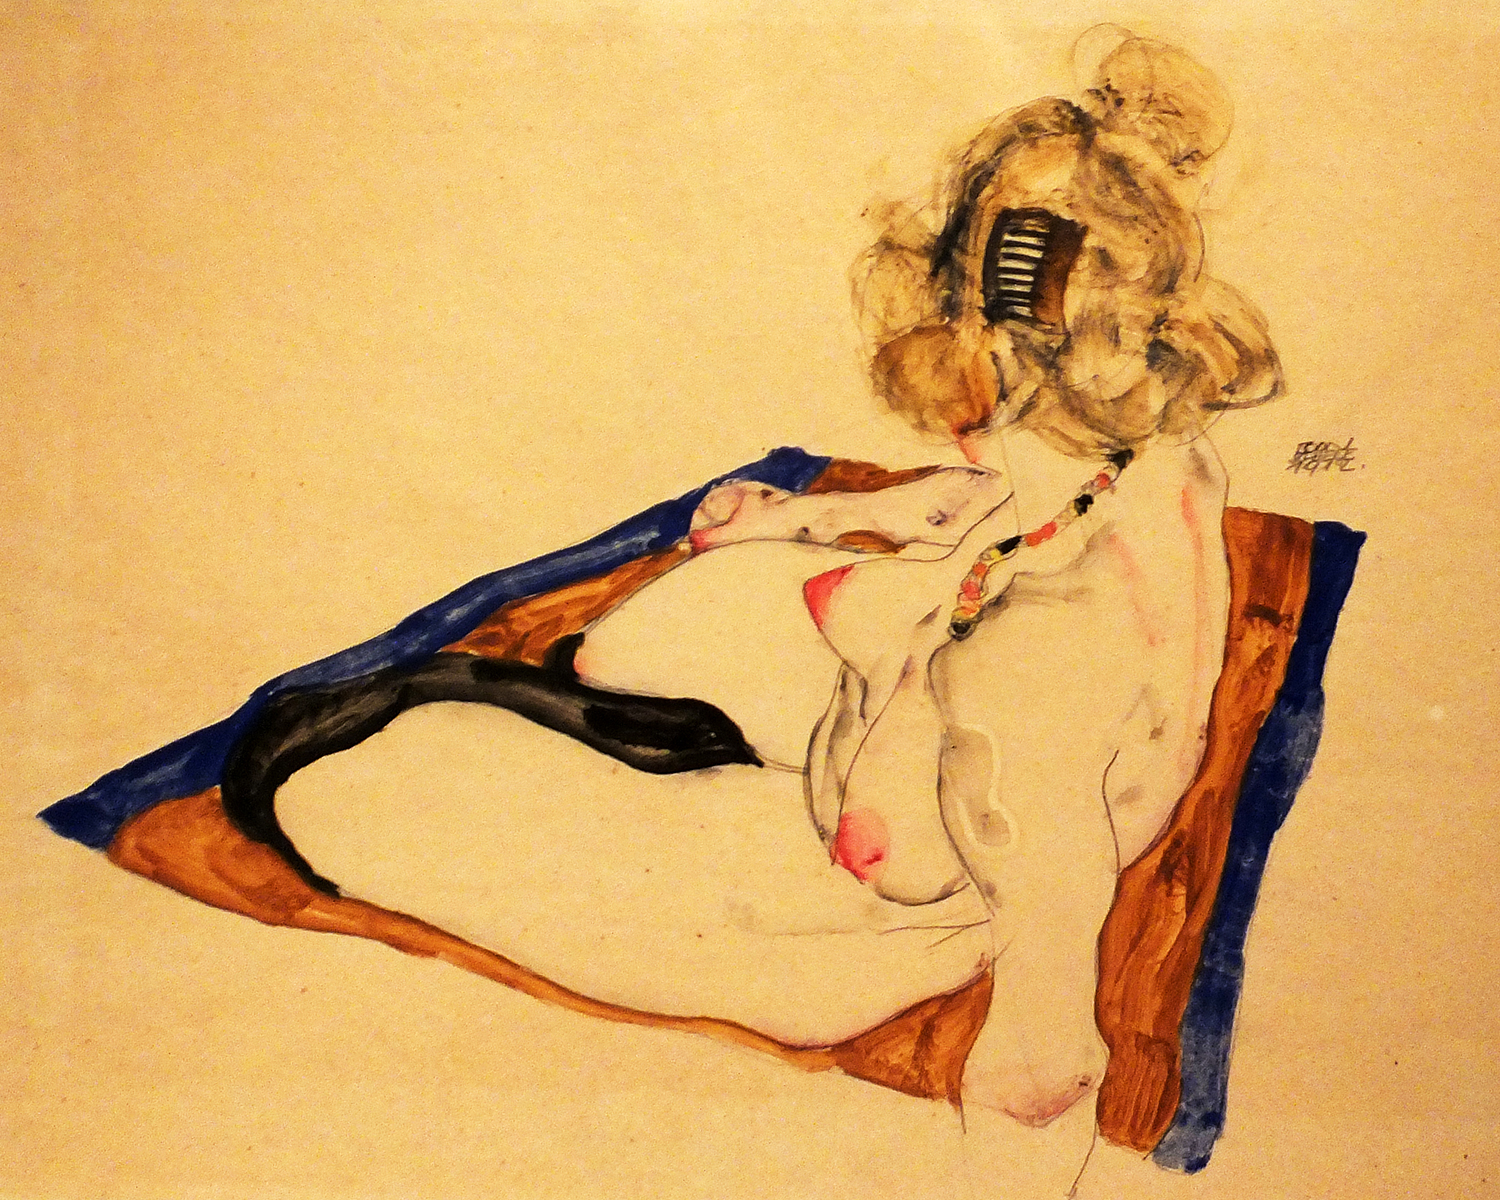 Egon Schiele, Seated Female Nude, 1912